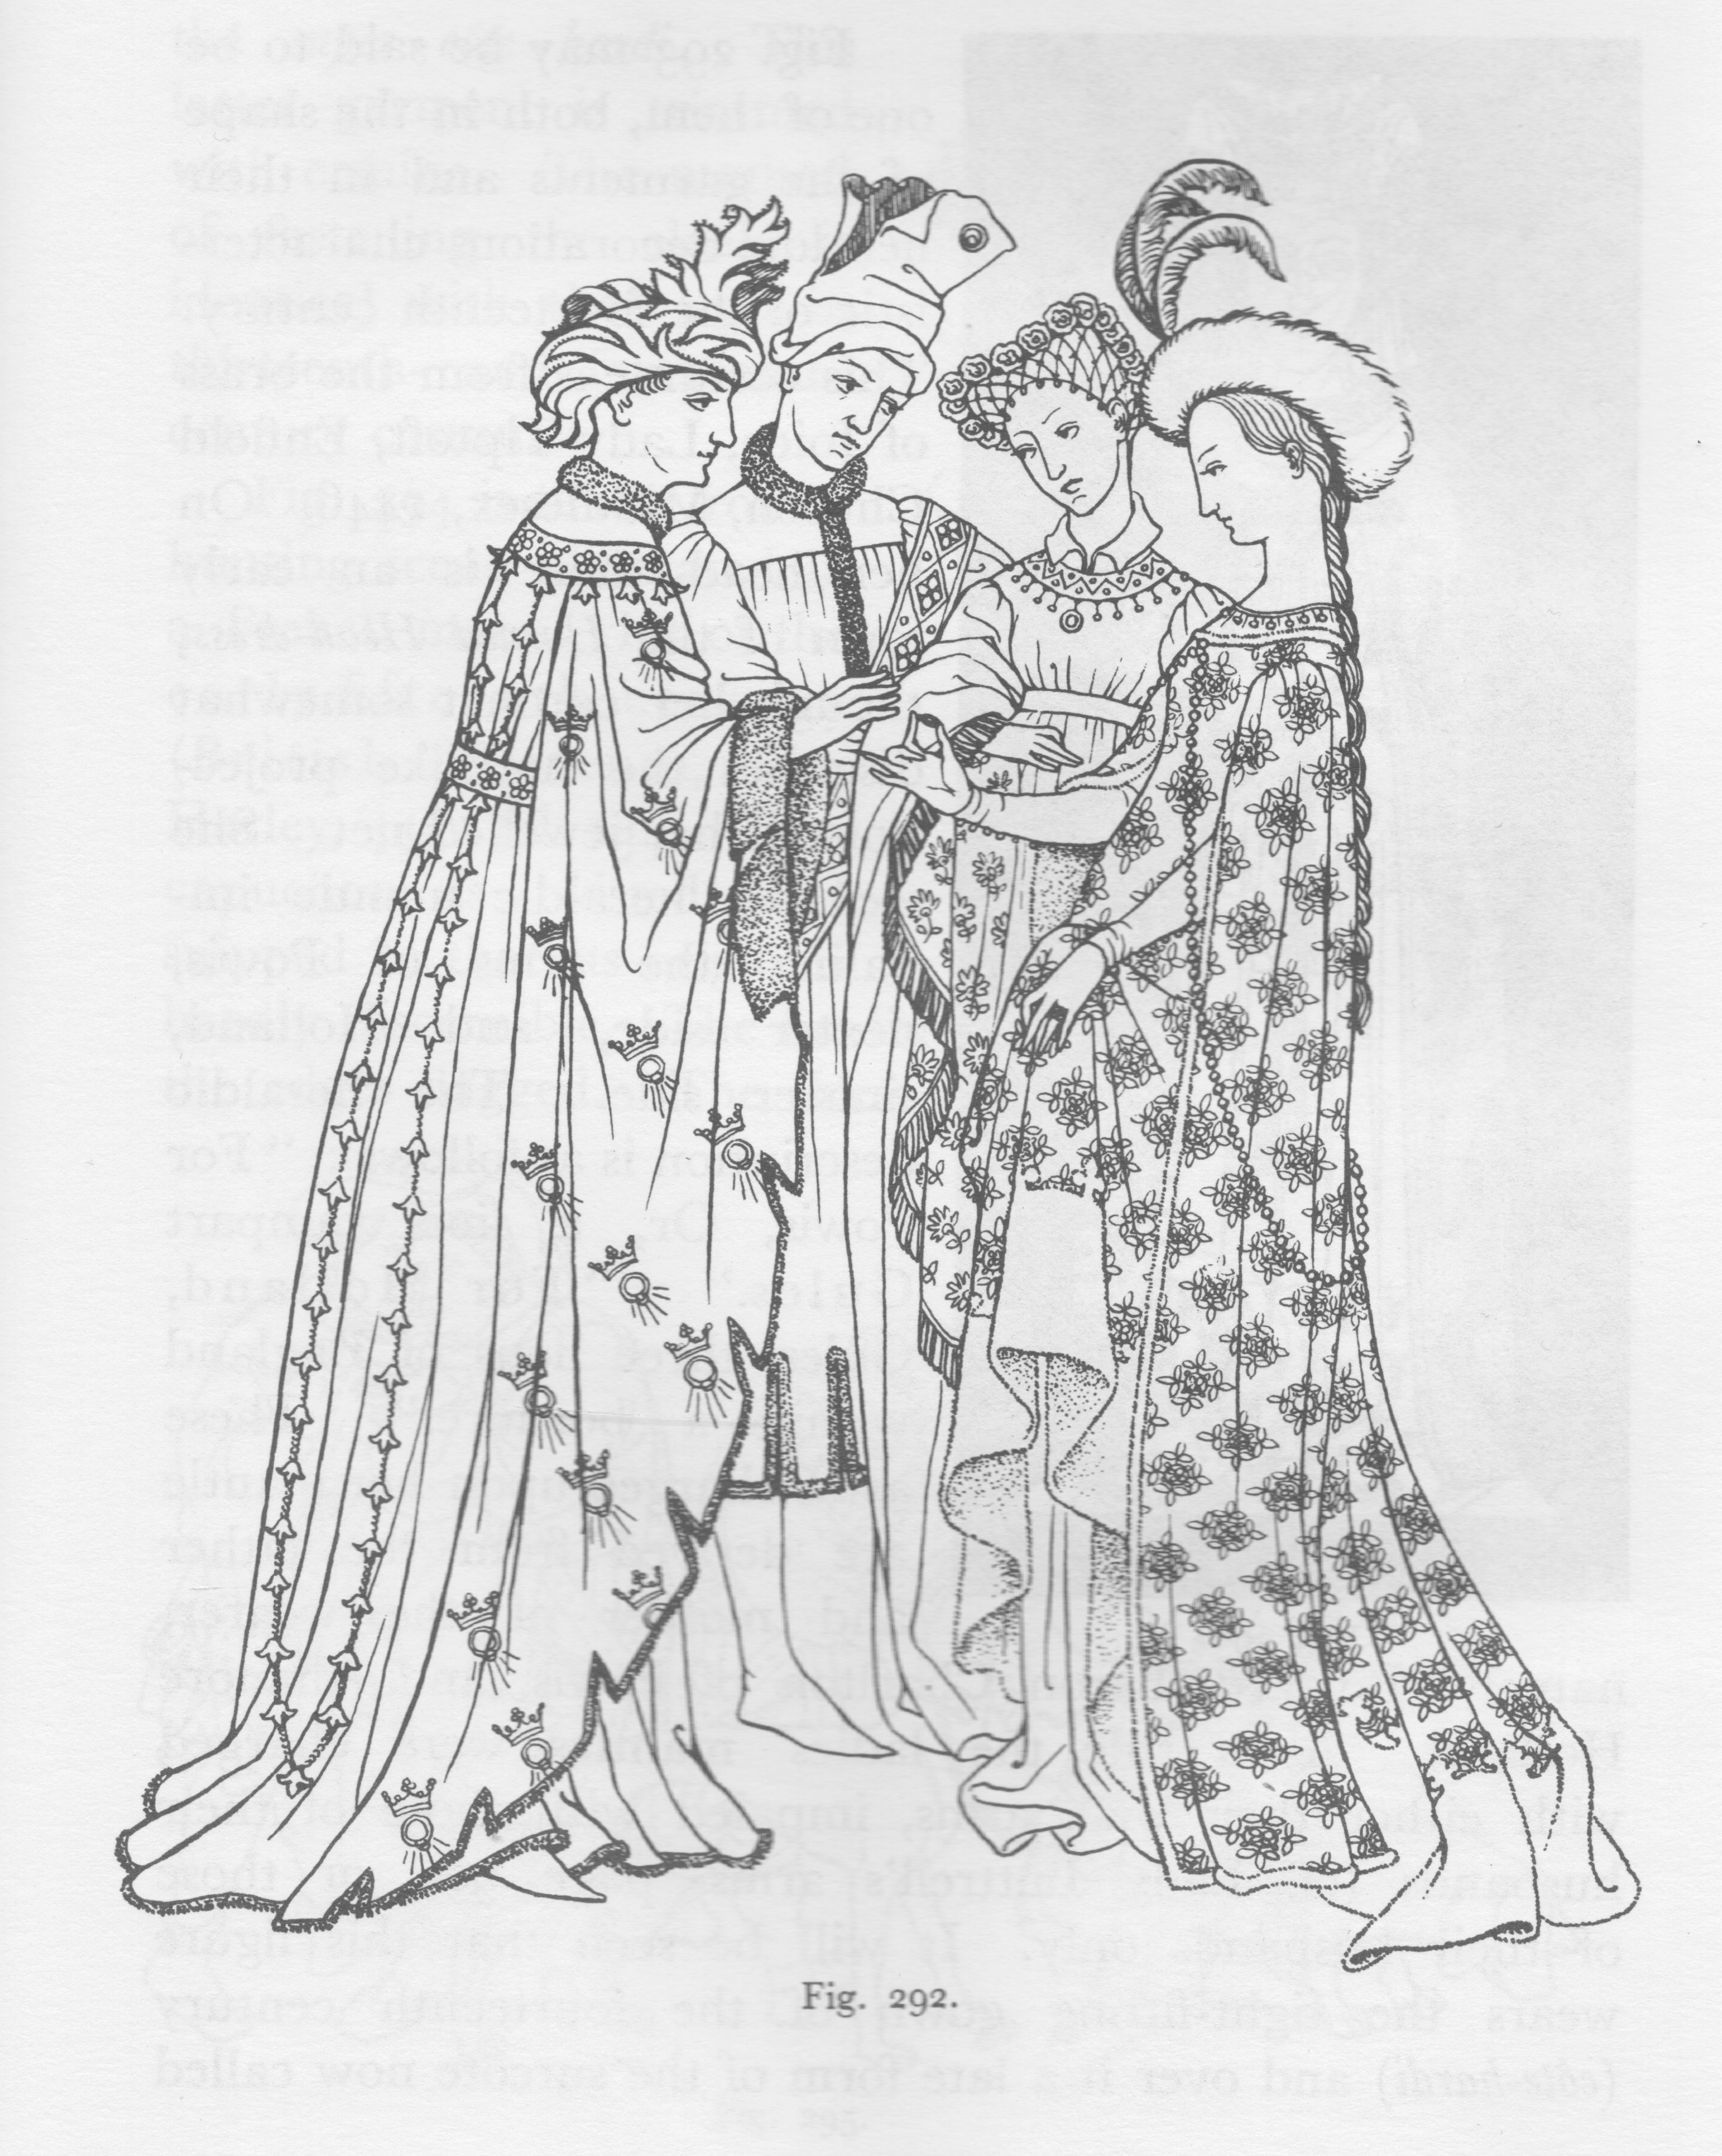 Illustration from Medieval Costume in England and France by Mary G. Houston